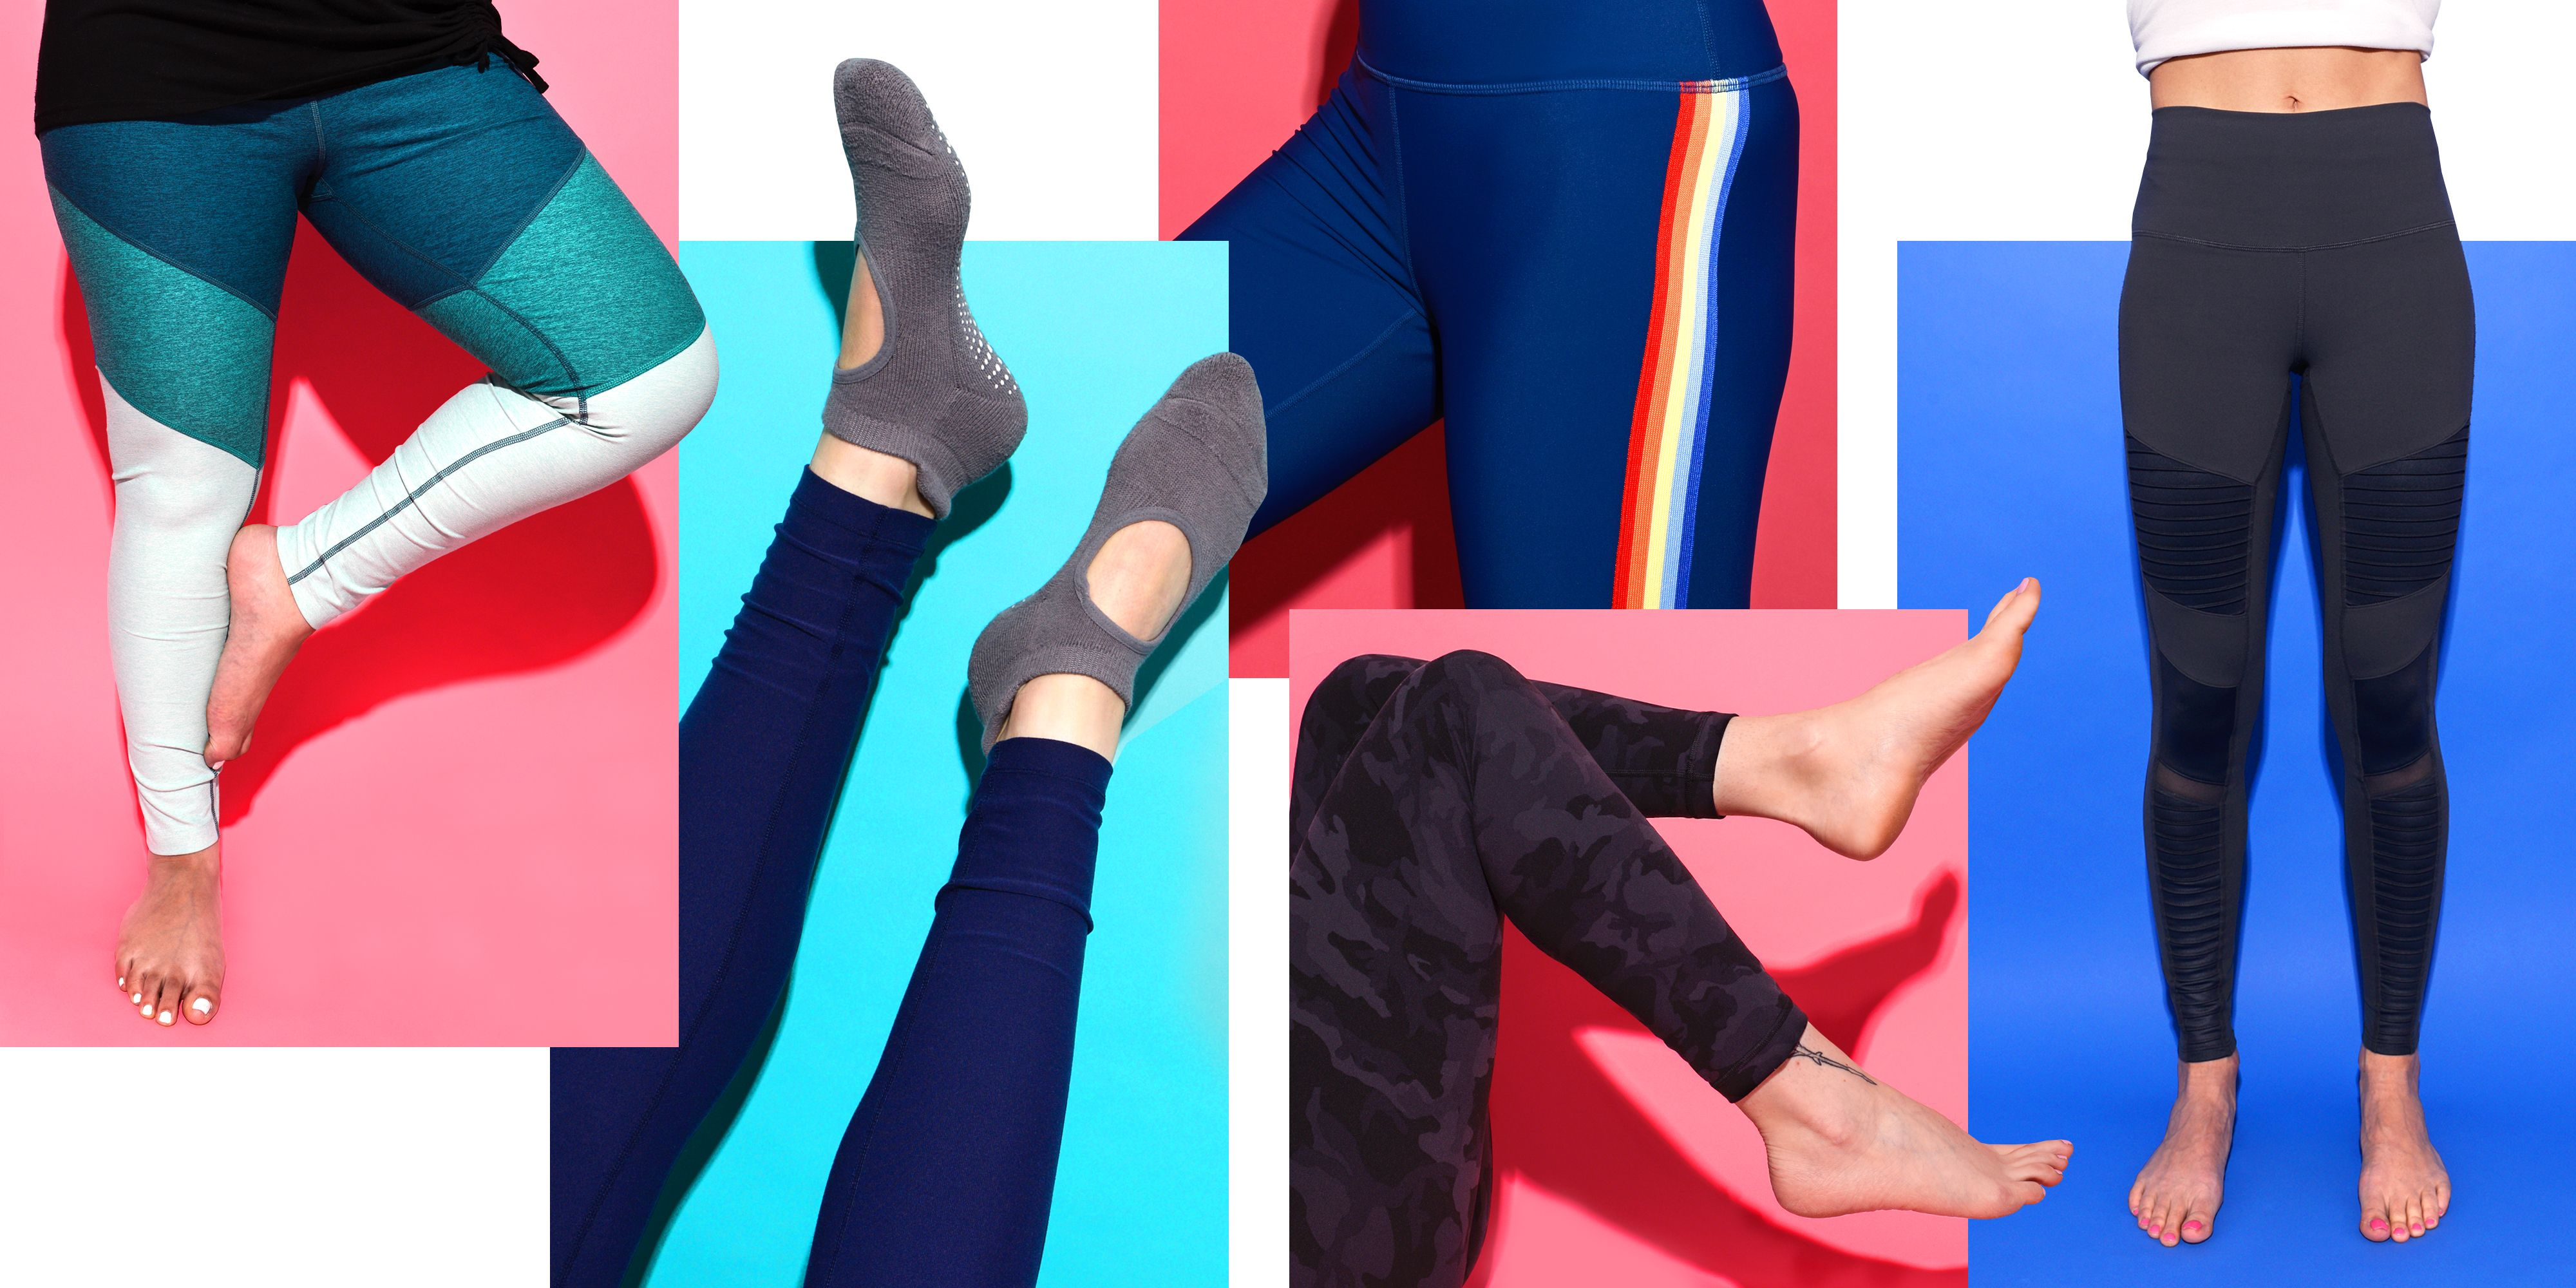 50887485c002ae 15 Editors Tested 26 Styles of Women's Yoga Pants — Here Are the Best of  the Best